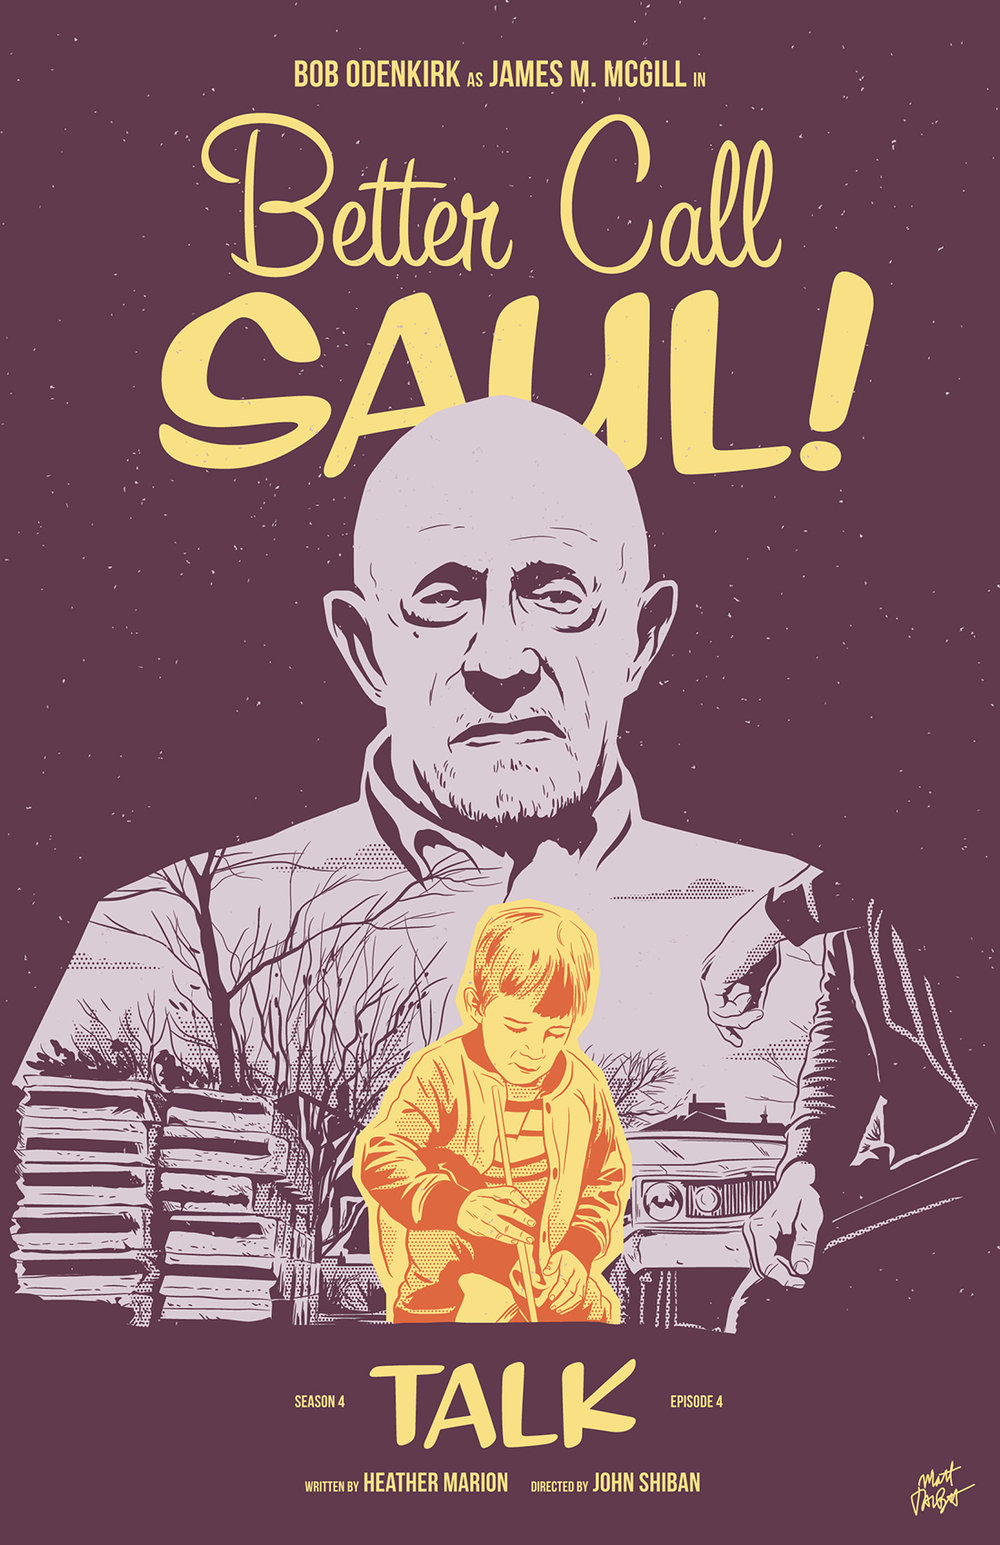 Better Call Saul Season 4 Episode 4, Talk, poster by Matt Talbot